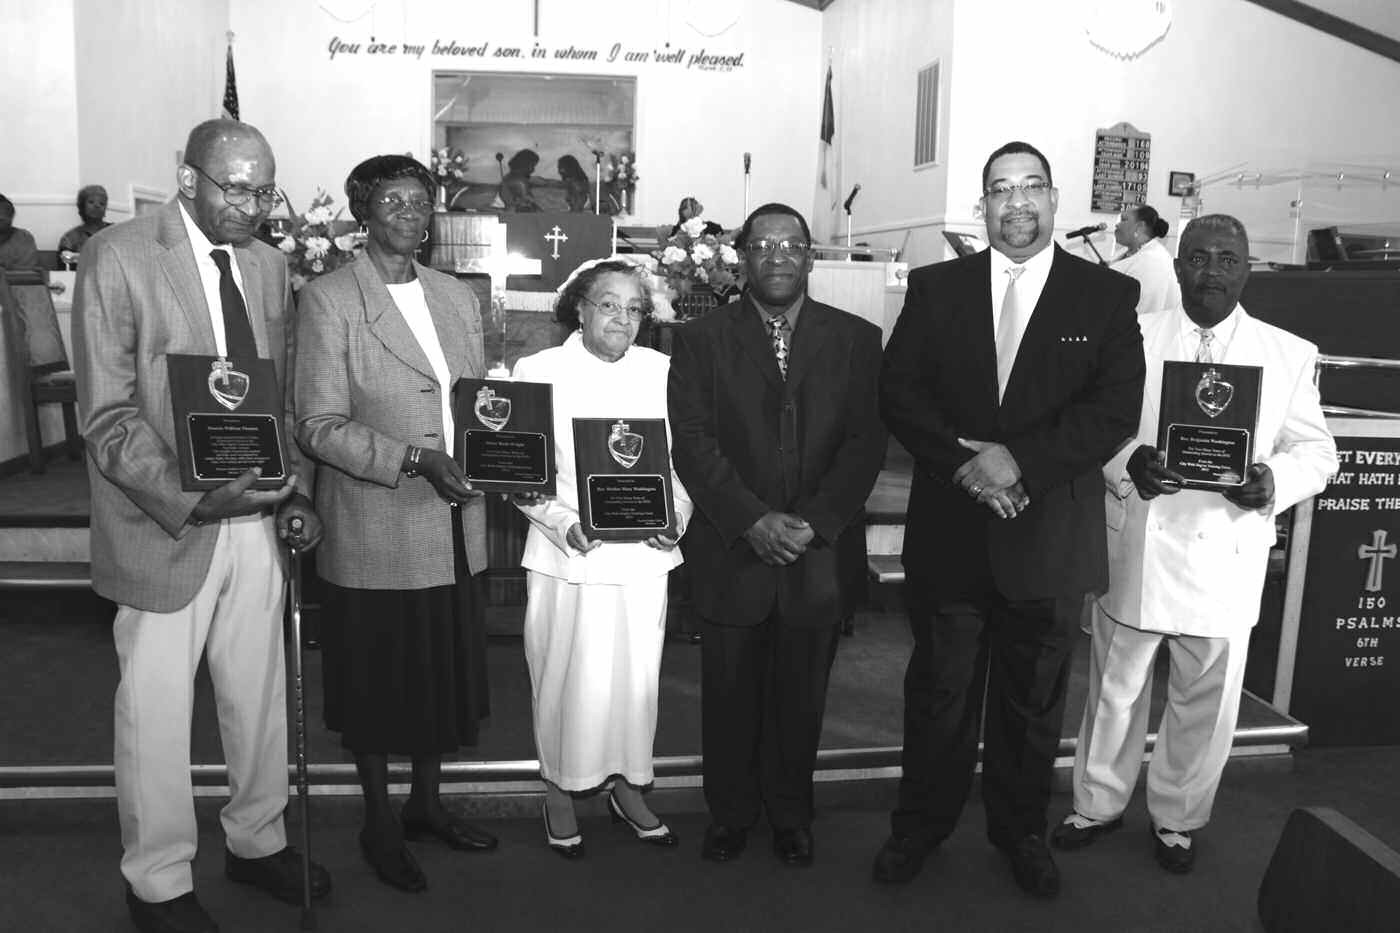 The City-wide Baptist Training Union of Savannah celebrated its anniversary, January 29, 2012. Several long time member of the BTU were honored for their leadership and service. Pictured: Rev. Paul A. Sheppard, Deacon Andrew Foster, Honorees: Deacon William Thomas, Rev. Mother Mary Washington, Rev. Benjamin Washington, Sis. Viola Baker; not standing: Mrs. Ruth Wright.